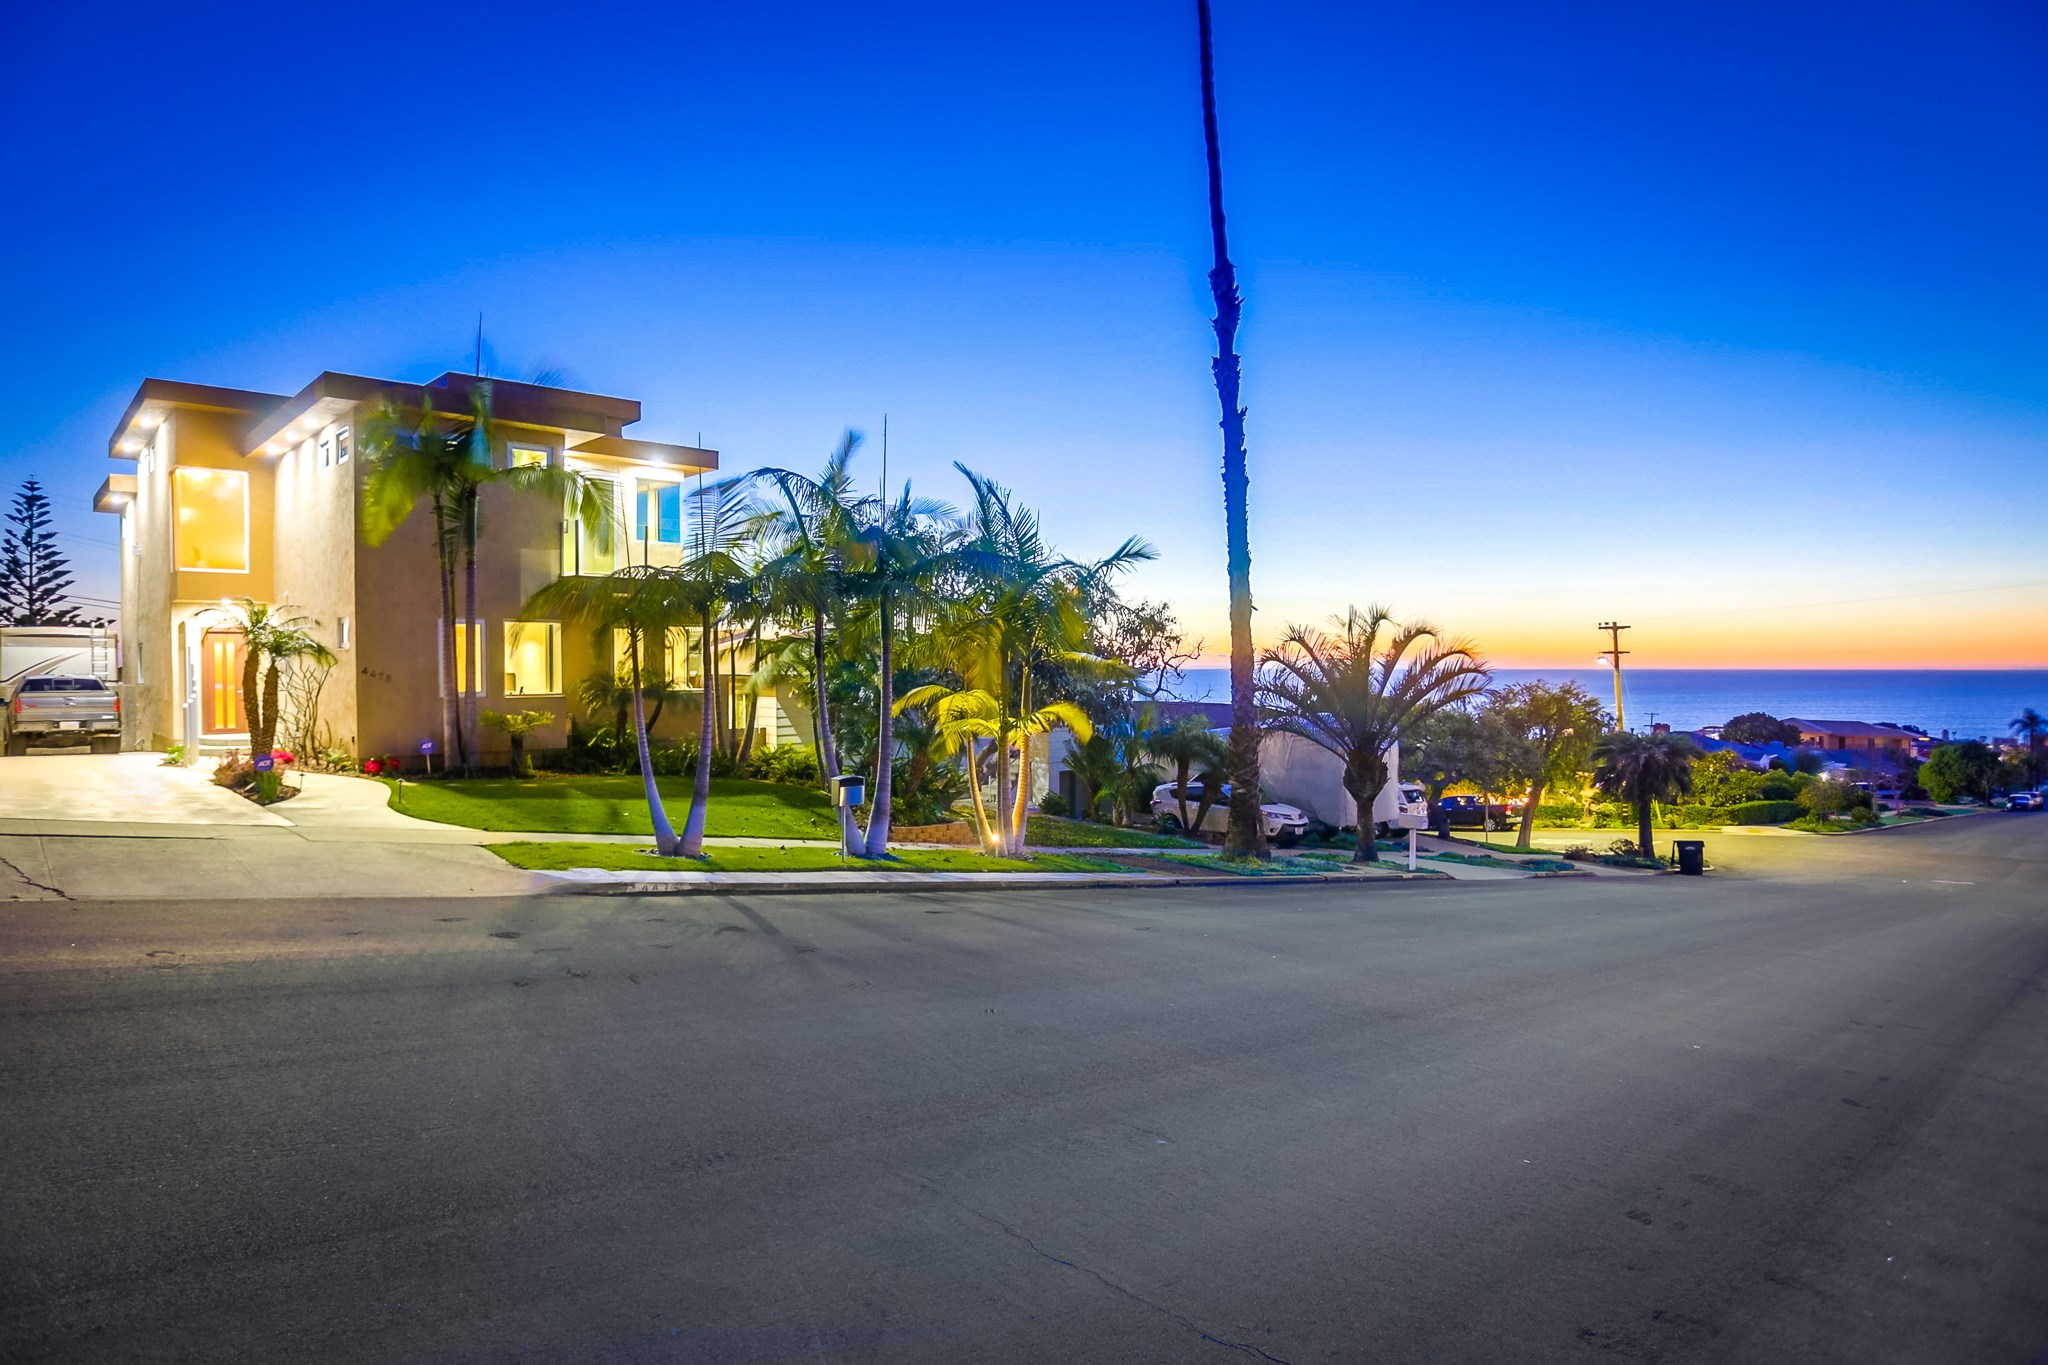 "Amazing panoramic white water ocean views from Sunset Cliffs to La Jolla enhance this one-of-a-kind luxury home. Sweeping ocean views from main living areas, including the 2 upper master bedrooms. This modern masterpiece was taken down to the studs in 2006 & rebuilt with high-end, gorgeous materials. Entertain in the stunning ocean view living room w/full bar & floor to ceiling wall of opening blue glass. Parking for 5 cars & a 40-foot motorhome. Come experience this rare, ocean view opportunity!Marvel in nature's stunning sunsets, from your perch at one of the best view locations on the Peninsula. Extras include: * Steel beam 2006 modern construction * Blue glass and rain glass windows throughout * Vantage ""smart home"" technology * Professionally interior designed treatments * Push button water feature at entry * Bi-directional blue glass sliders in dining room. * Motion sensor lighting in all baths * Programable bath fans * Both MBR's upstairs with outstanding views, luxurious baths & walk-in closets * 3 bedrooms and 2 baths downstairs * 10', 14' and 24' ceilings * 2 washer/dryer hook-ups in laundry room * Laundry chute in master closet * Enclosed rain glass steam shower and luxurious spa tub * TV in master bath mirror * Views of Sunset Cliffs from master bath * 5 sets of mitered corner windows to the views * 2 heaters, 2 air conditioners, 2 tankless water heaters * 2 sinks with garbage disposals in the kitchen * Oversized Sub-Zero stainless steel refrigerator * Programable home lighting & art lights * Interior and exterior cameras * Full bar with best views to La Jolla: Refrigerator, wine refrigerator, ice maker, wet bar sink and lighted bar back. * Retractable blue-glass sliding wall with amazing views * Stair lighting in media room * Finished garage with drywall, cabinets, workbench and epoxy floor * Room for 2 cars in the garage, a 40' motorhome, truck, trailer and still park another car in the driveway! A total of 7 cars could be parked on the lot. * Alarm system * Whole house music wiring * Both kitchen sinks w/reverse osmosis drinking H2O w/holding tank-never run out! * Ultimate master closet with ""Reed Glass"" closet system * Lower deck off kitchen/dining room is plumbed for gas BBQ * From your couch you can check the surf, watch pelicans, sailboats, whales, Navy ships, cruise ships, helicopters, planes pulling beach banners, sailing schools, parrots, doves, humming birds, storm clouds, and the sunsets into the water all year! * This bargain in Point Loma is centrally located, usually going against San Diego county traffic. Downtown is a ten minute drive along the bay and Sunset Cliffs is a nature preserve for hiking, biking, running, water sports & beach gazing. * It's a pristine neighborhood with parents pushing strollers and daily dog walks with ocean views and breezes. * Shelter Island and the yacht clubs are 3 minutes away. * Live in San Diego half the year & vacation rental the rest for cash flow * Come experience nature at the ocean all day long!"